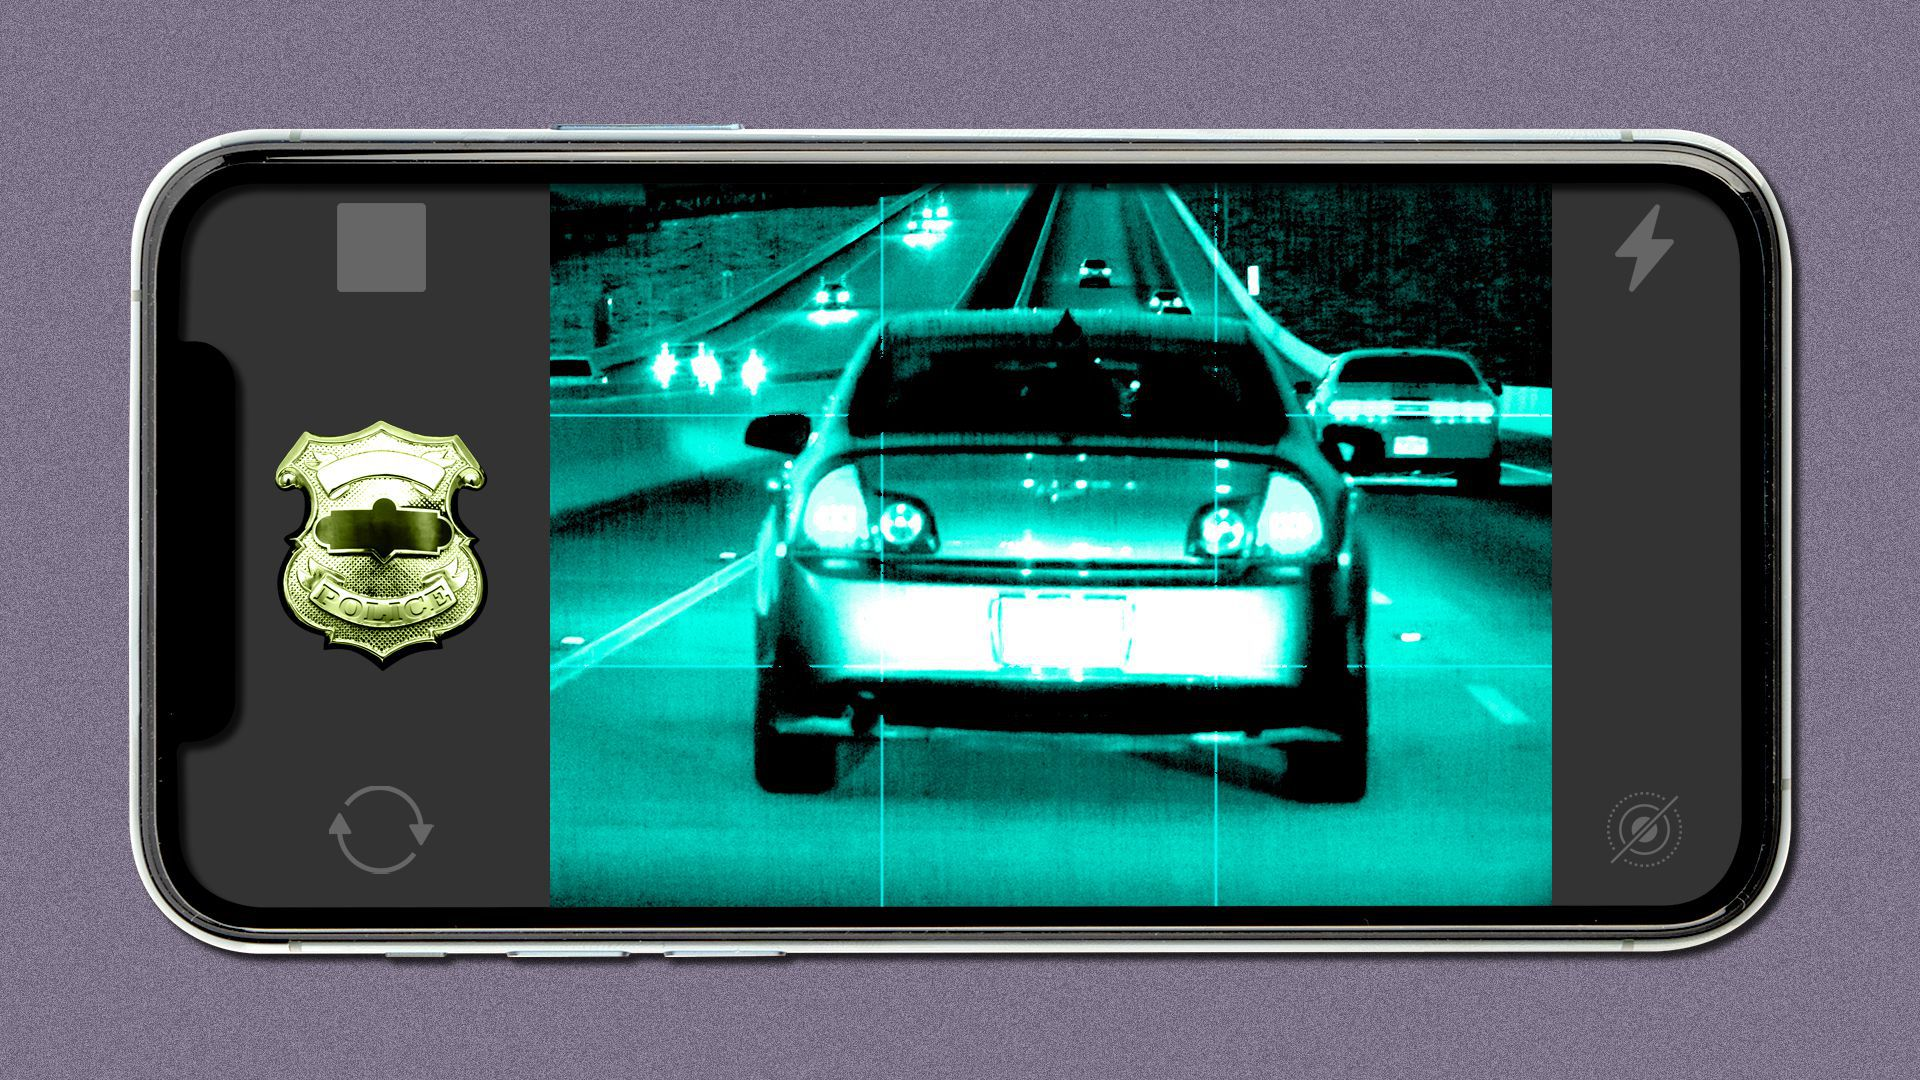 Illustration of a smartphone camera taking a photo of a car, with a police badge for a shutter button.